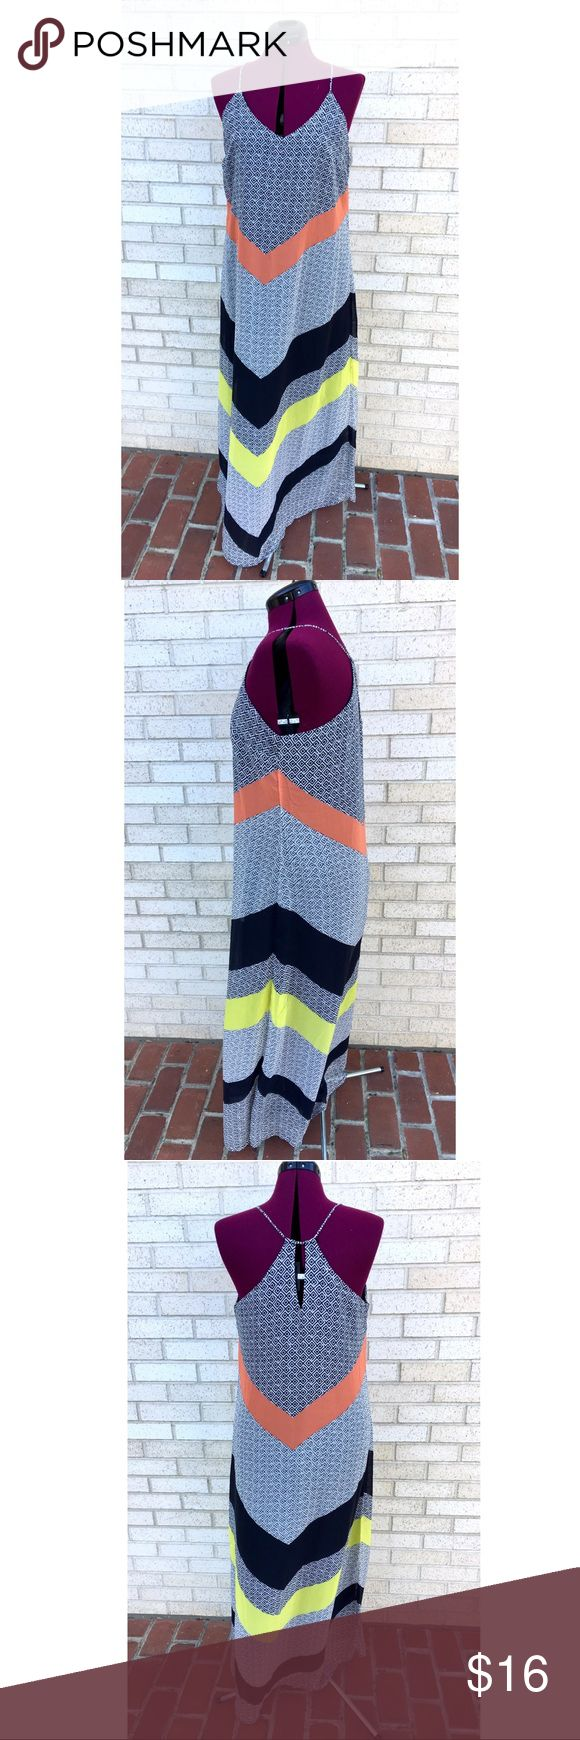 Old Navy Maxi Dress Festival Vacation Chevron Old Navy maxi dress. Great design with a large chevron pattern of orange, black & yellow, mixed with a more intricate black & white pattern! Excellent condition. Spaghetti straps with a flowing feel throughout. Perfect dress for vacation or the summer months ahead! Great for festivals, too! Old Navy Dresses Maxi